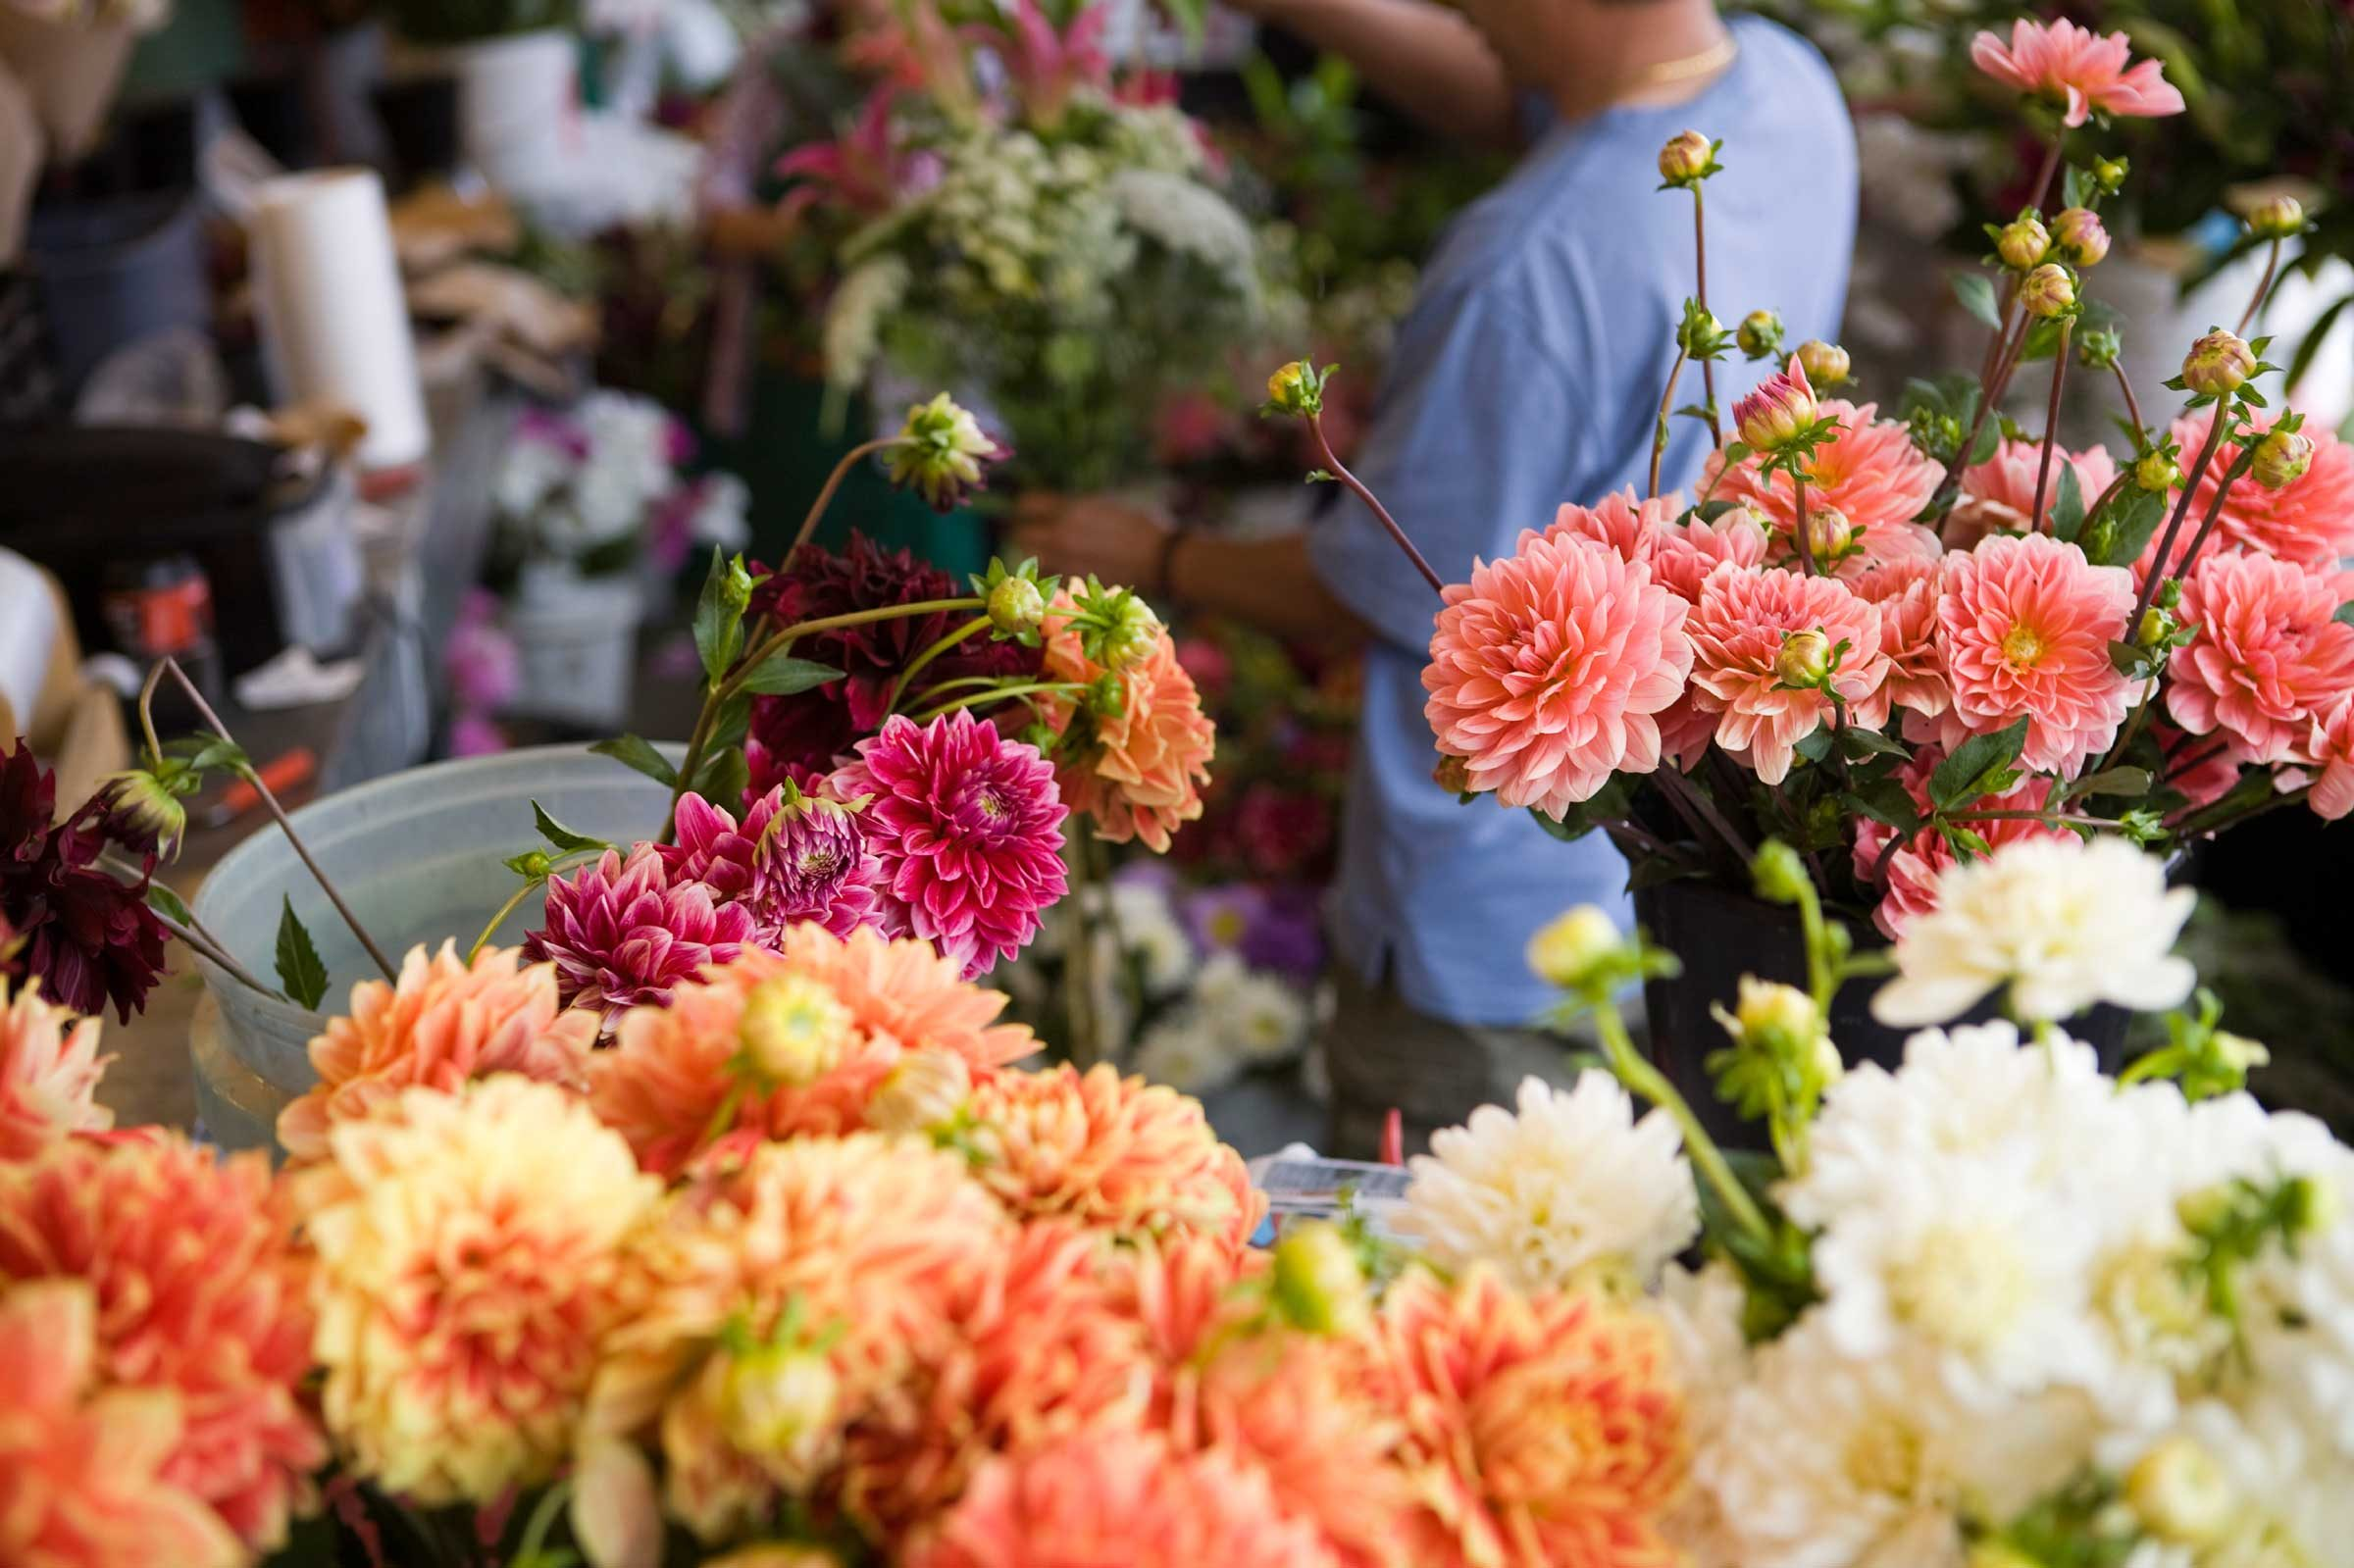 Most flower shops restock on Monday mornings